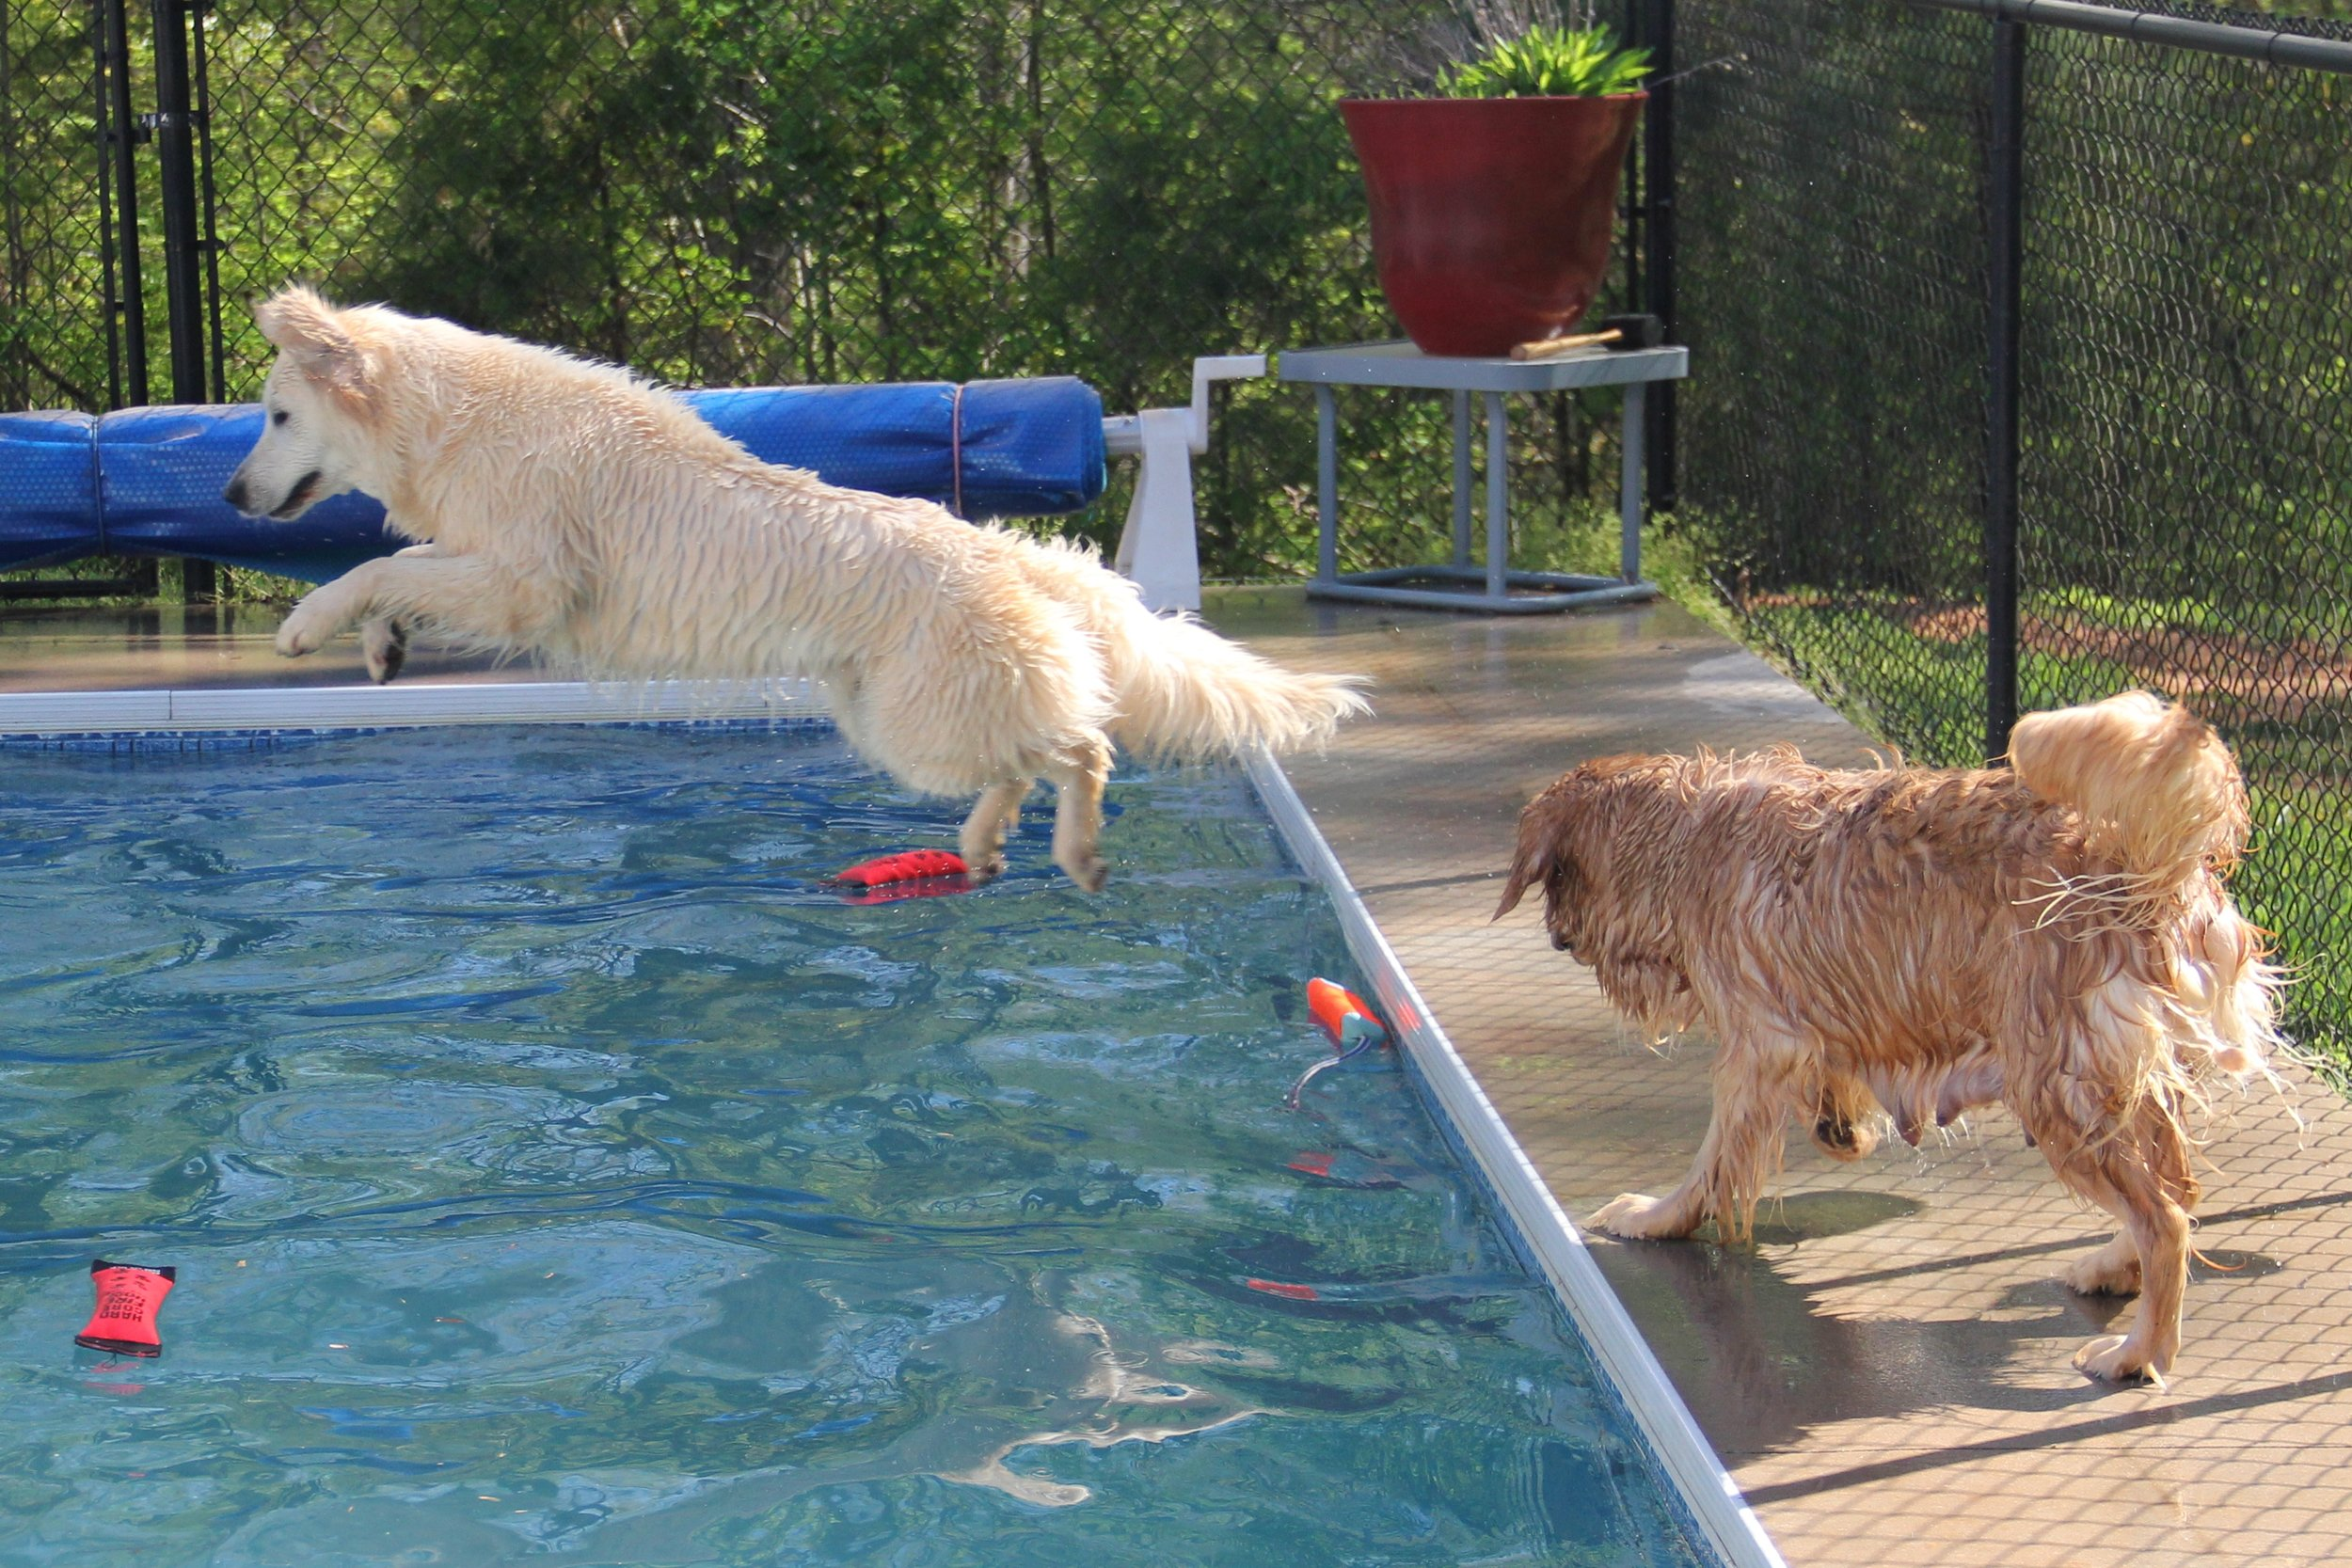 Molly diving in